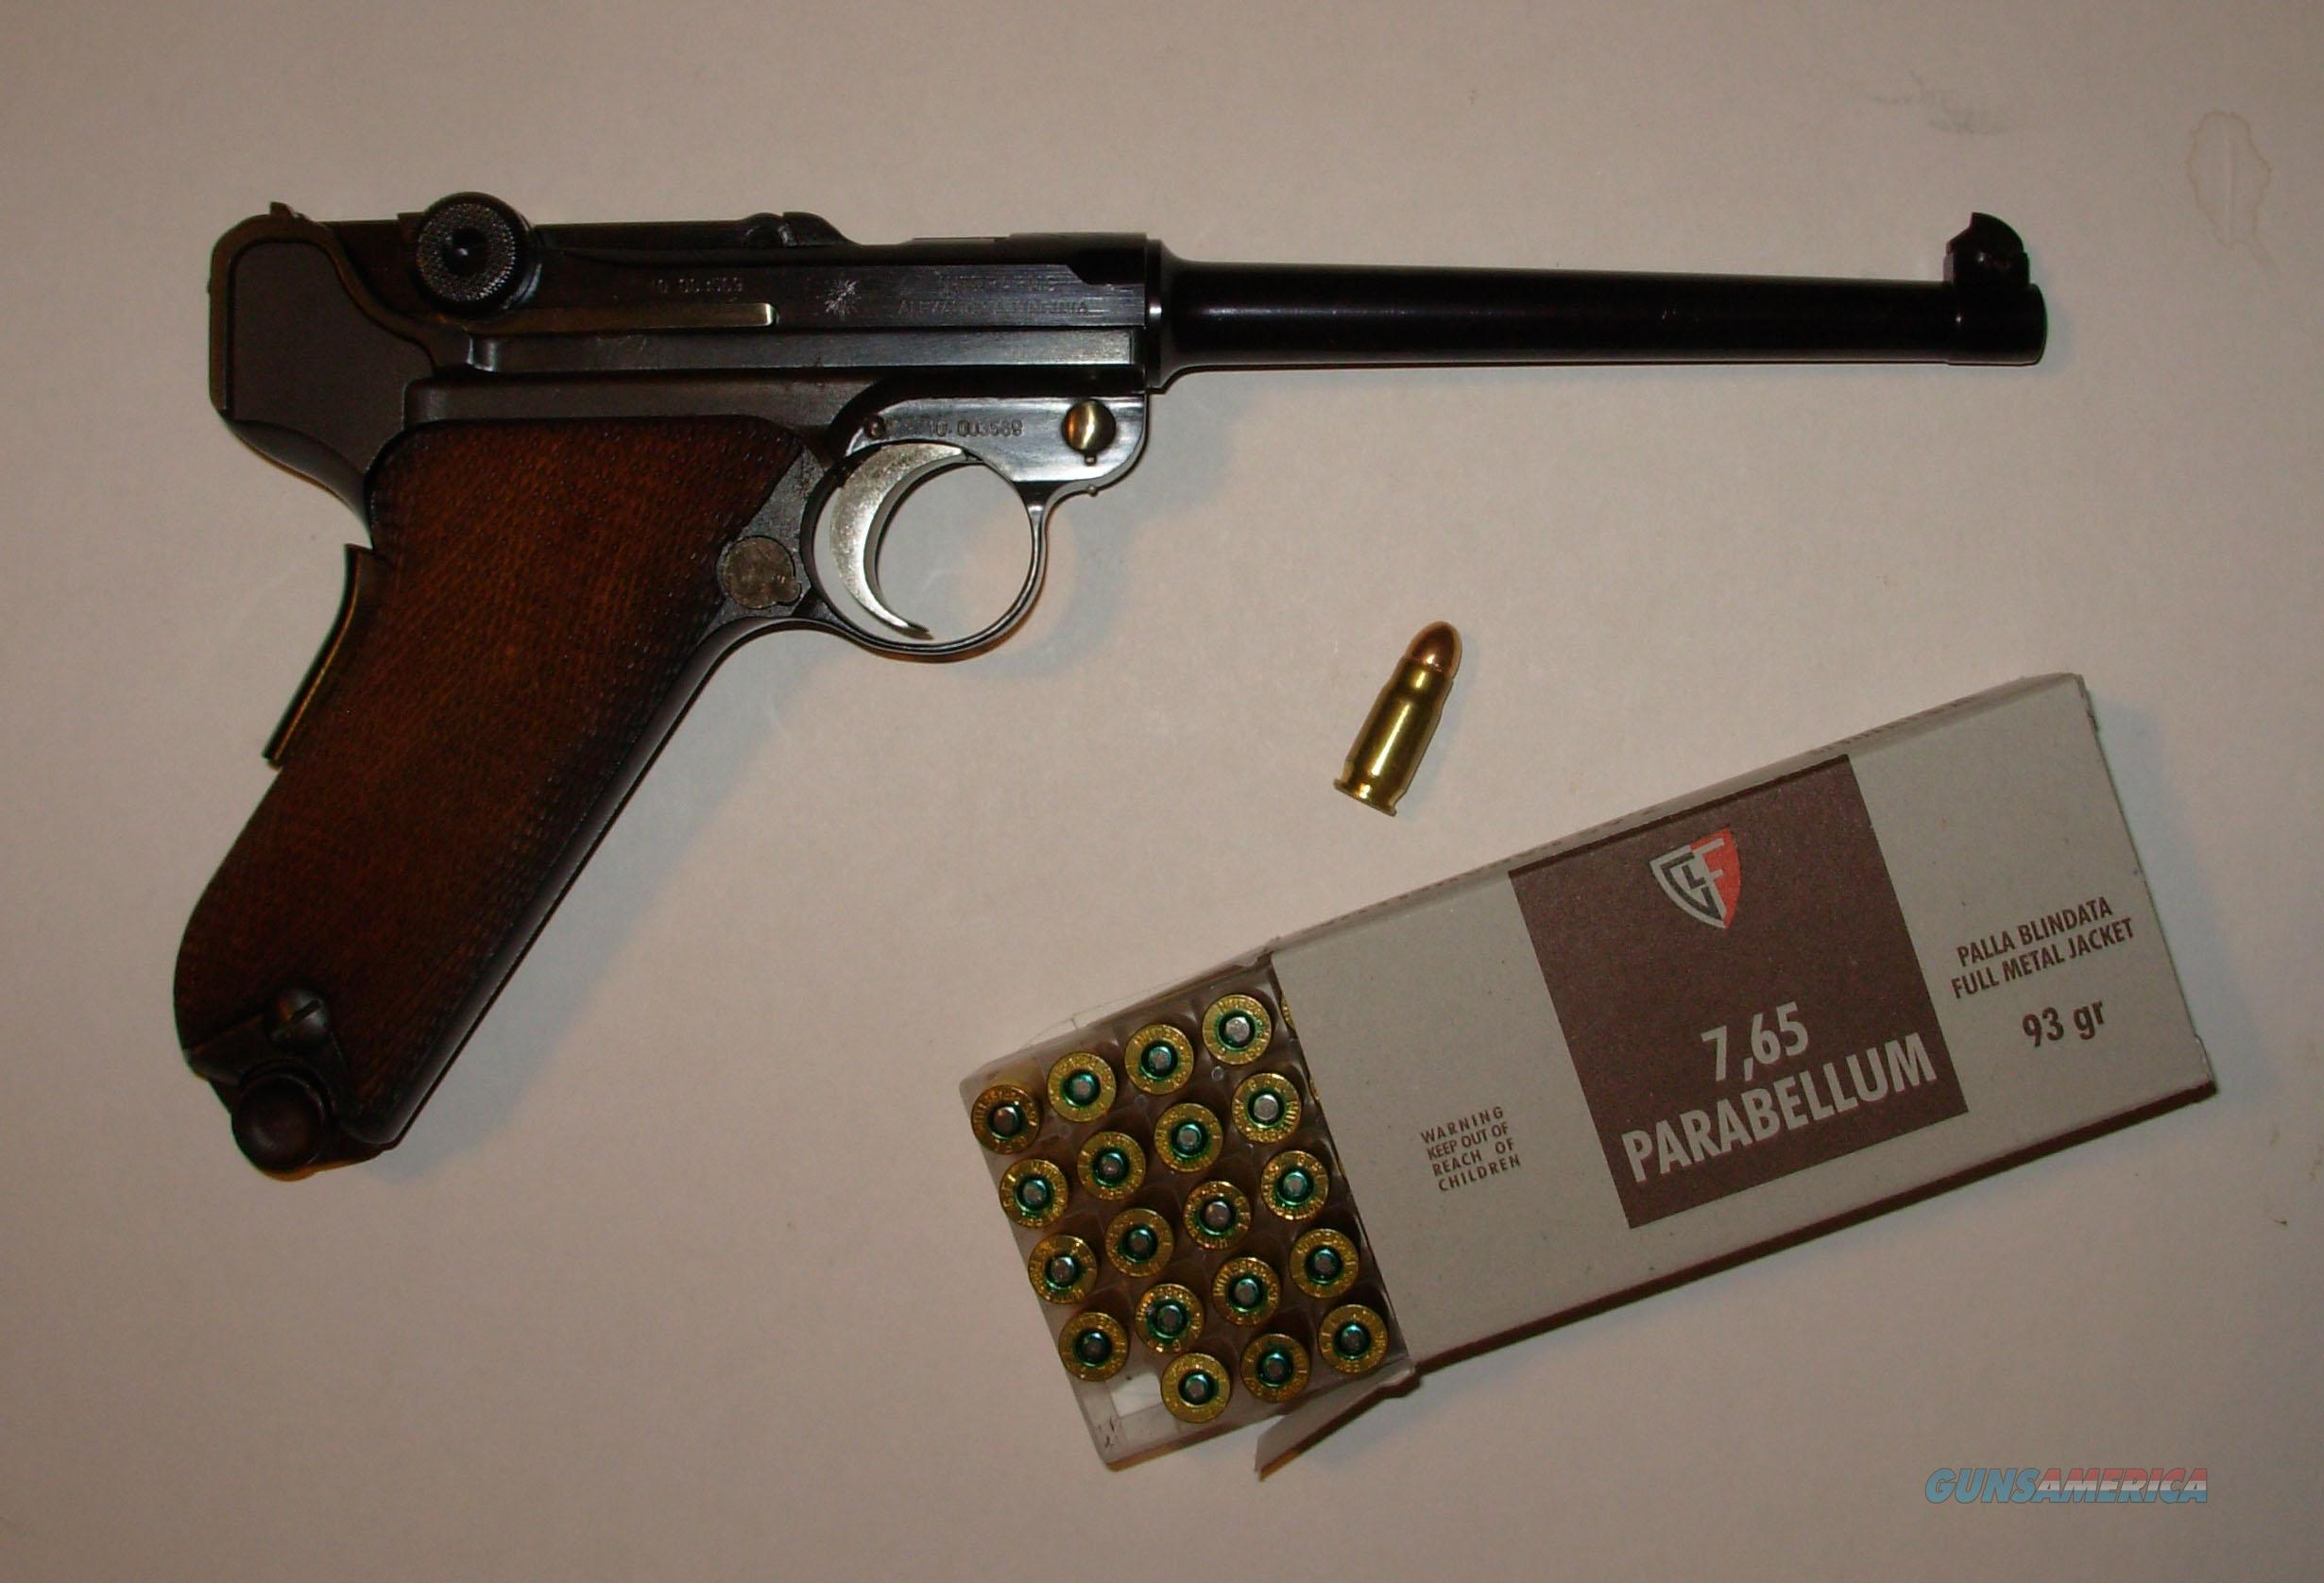 AMERICAN EAGLE *** 7 65 LUGER CALIBER *** MADE BY MAUSER *** AS NEW $999 00  WITH FREE SHIPPING!!!!